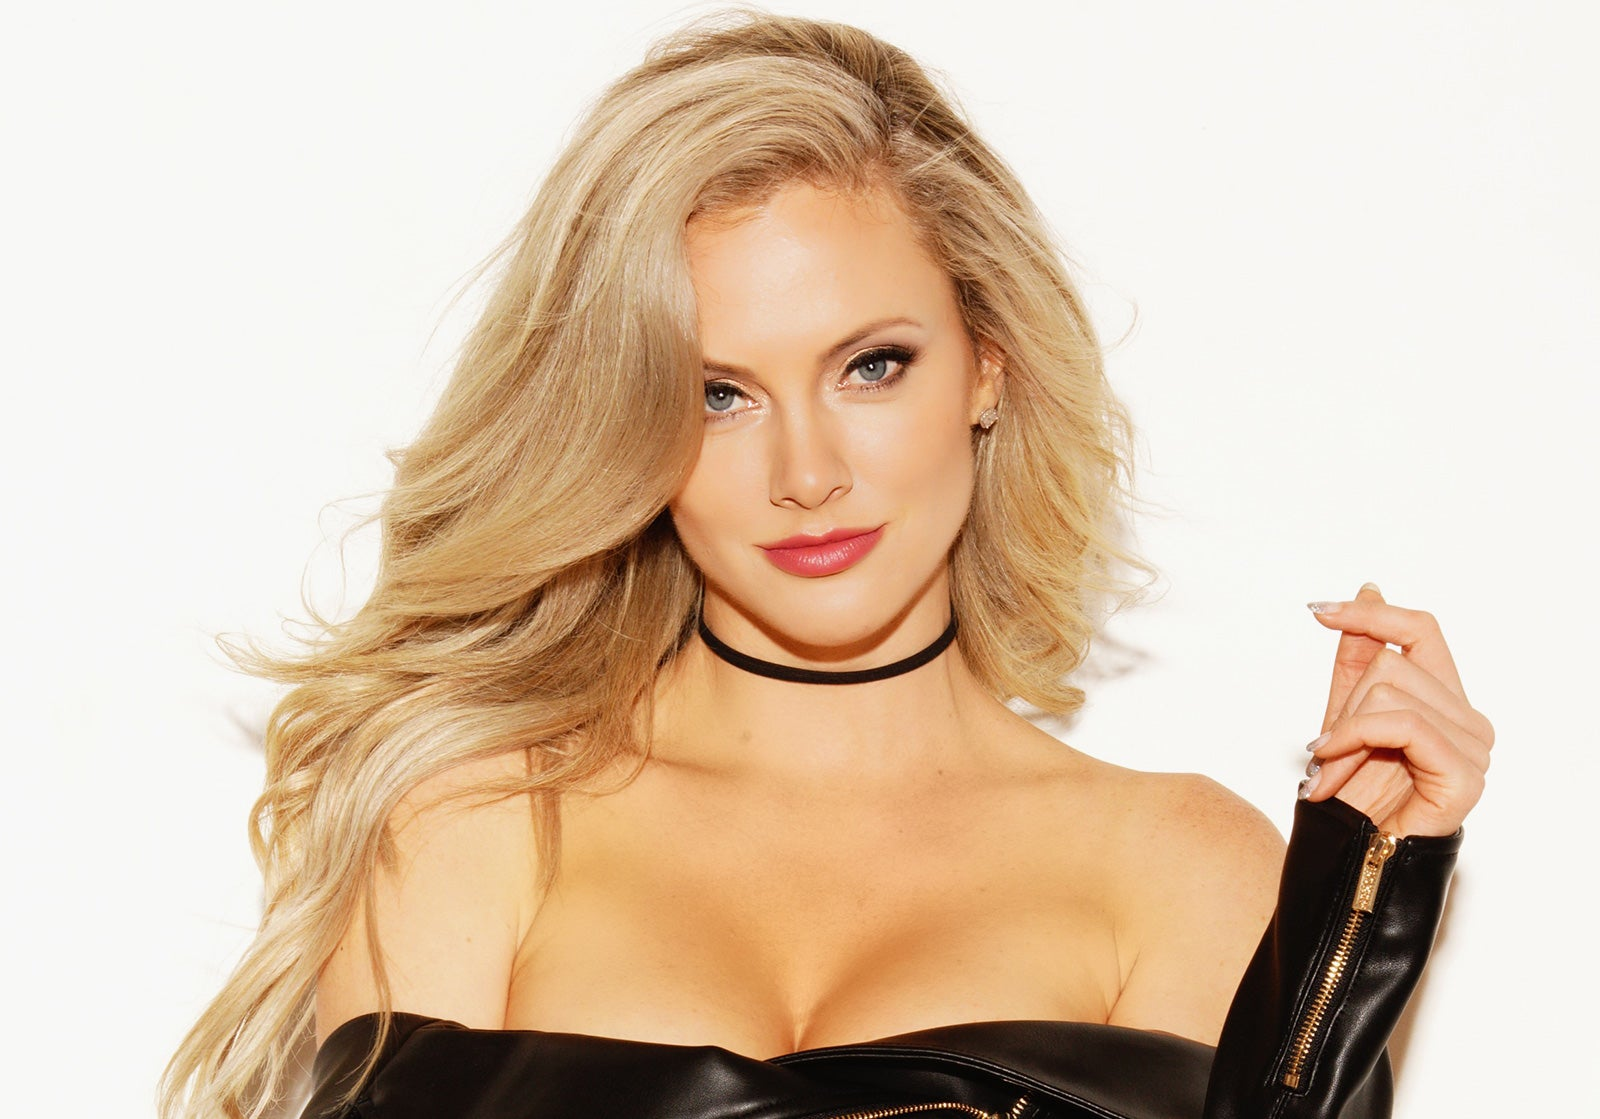 Nicole Arbour: Watch out here she comes - SWAGGER Magazine